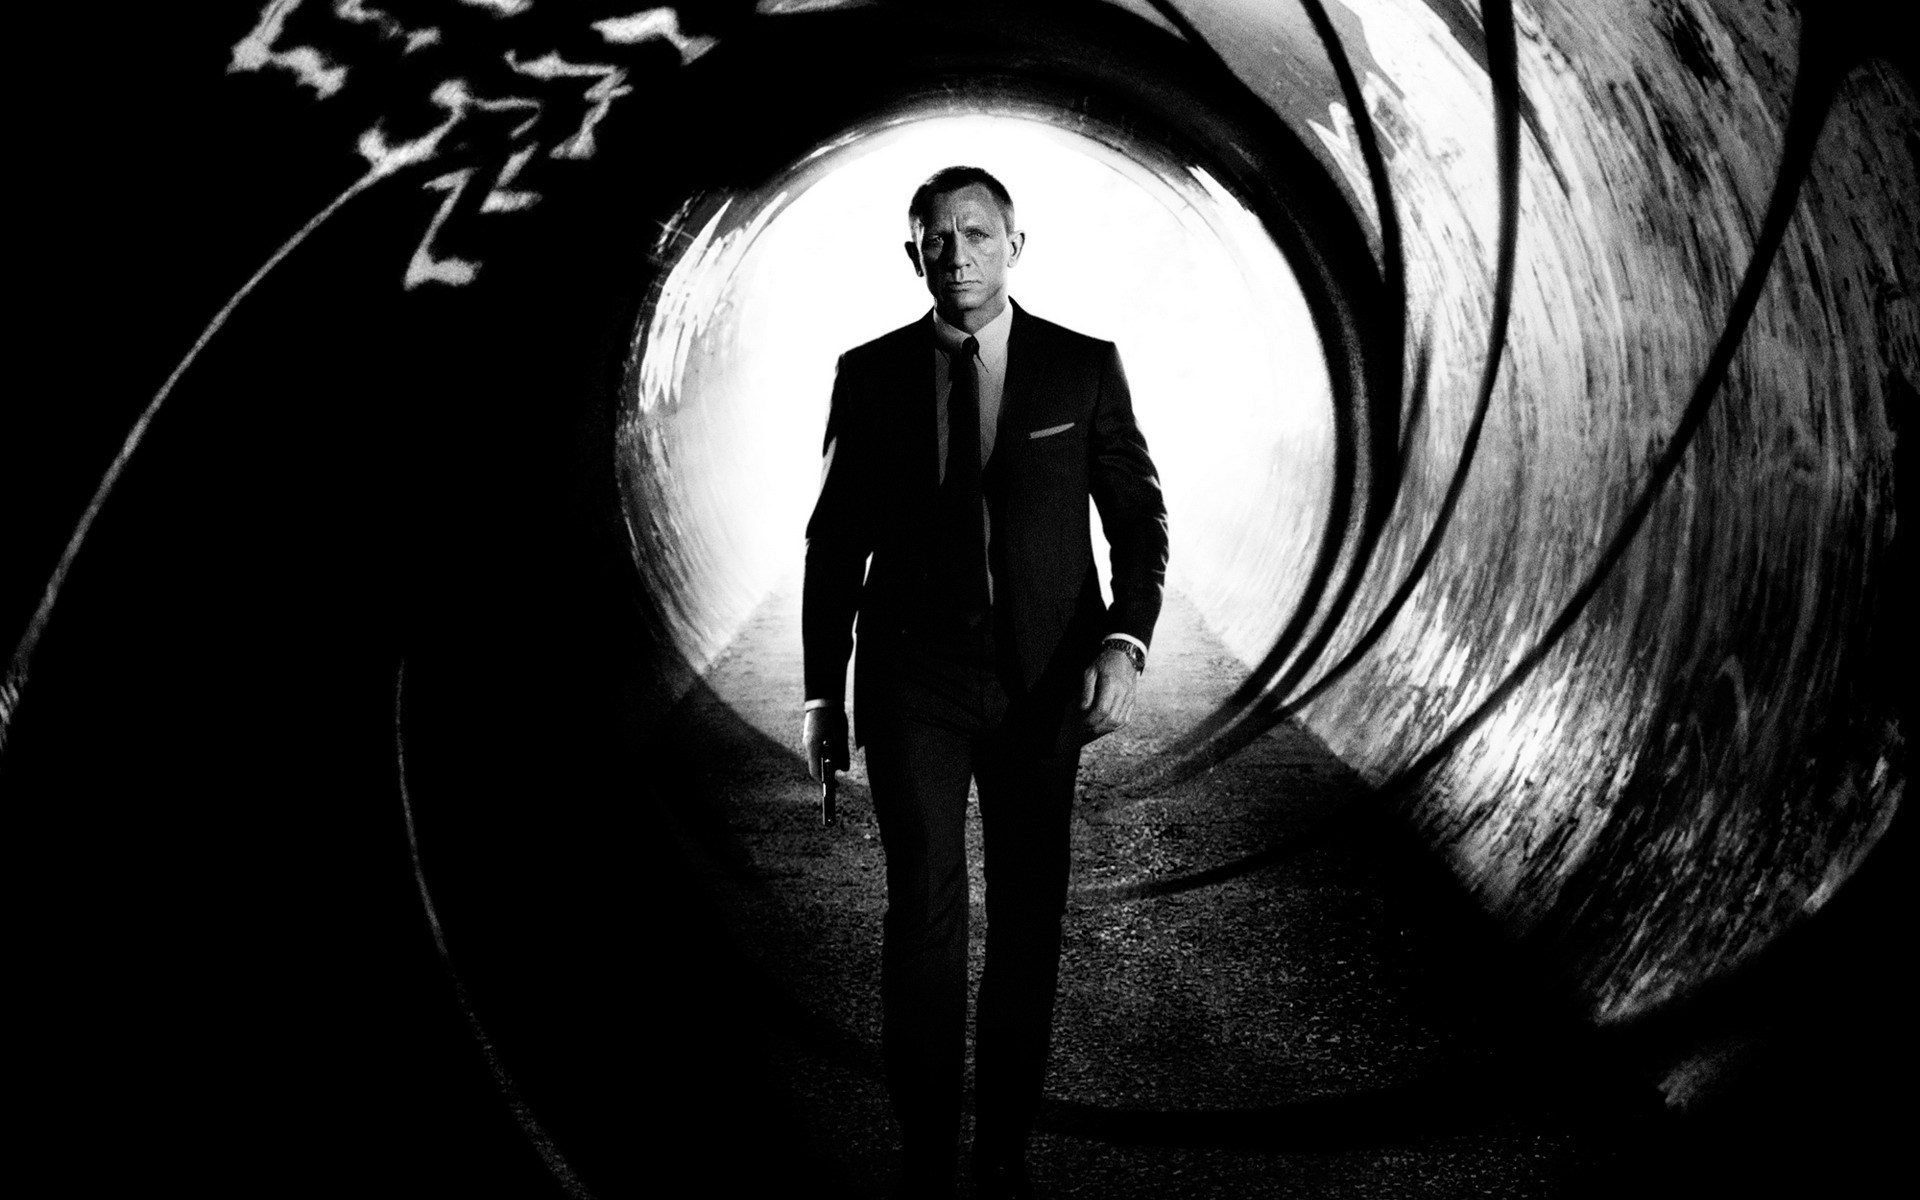 Amazing James Bond Wallpaper